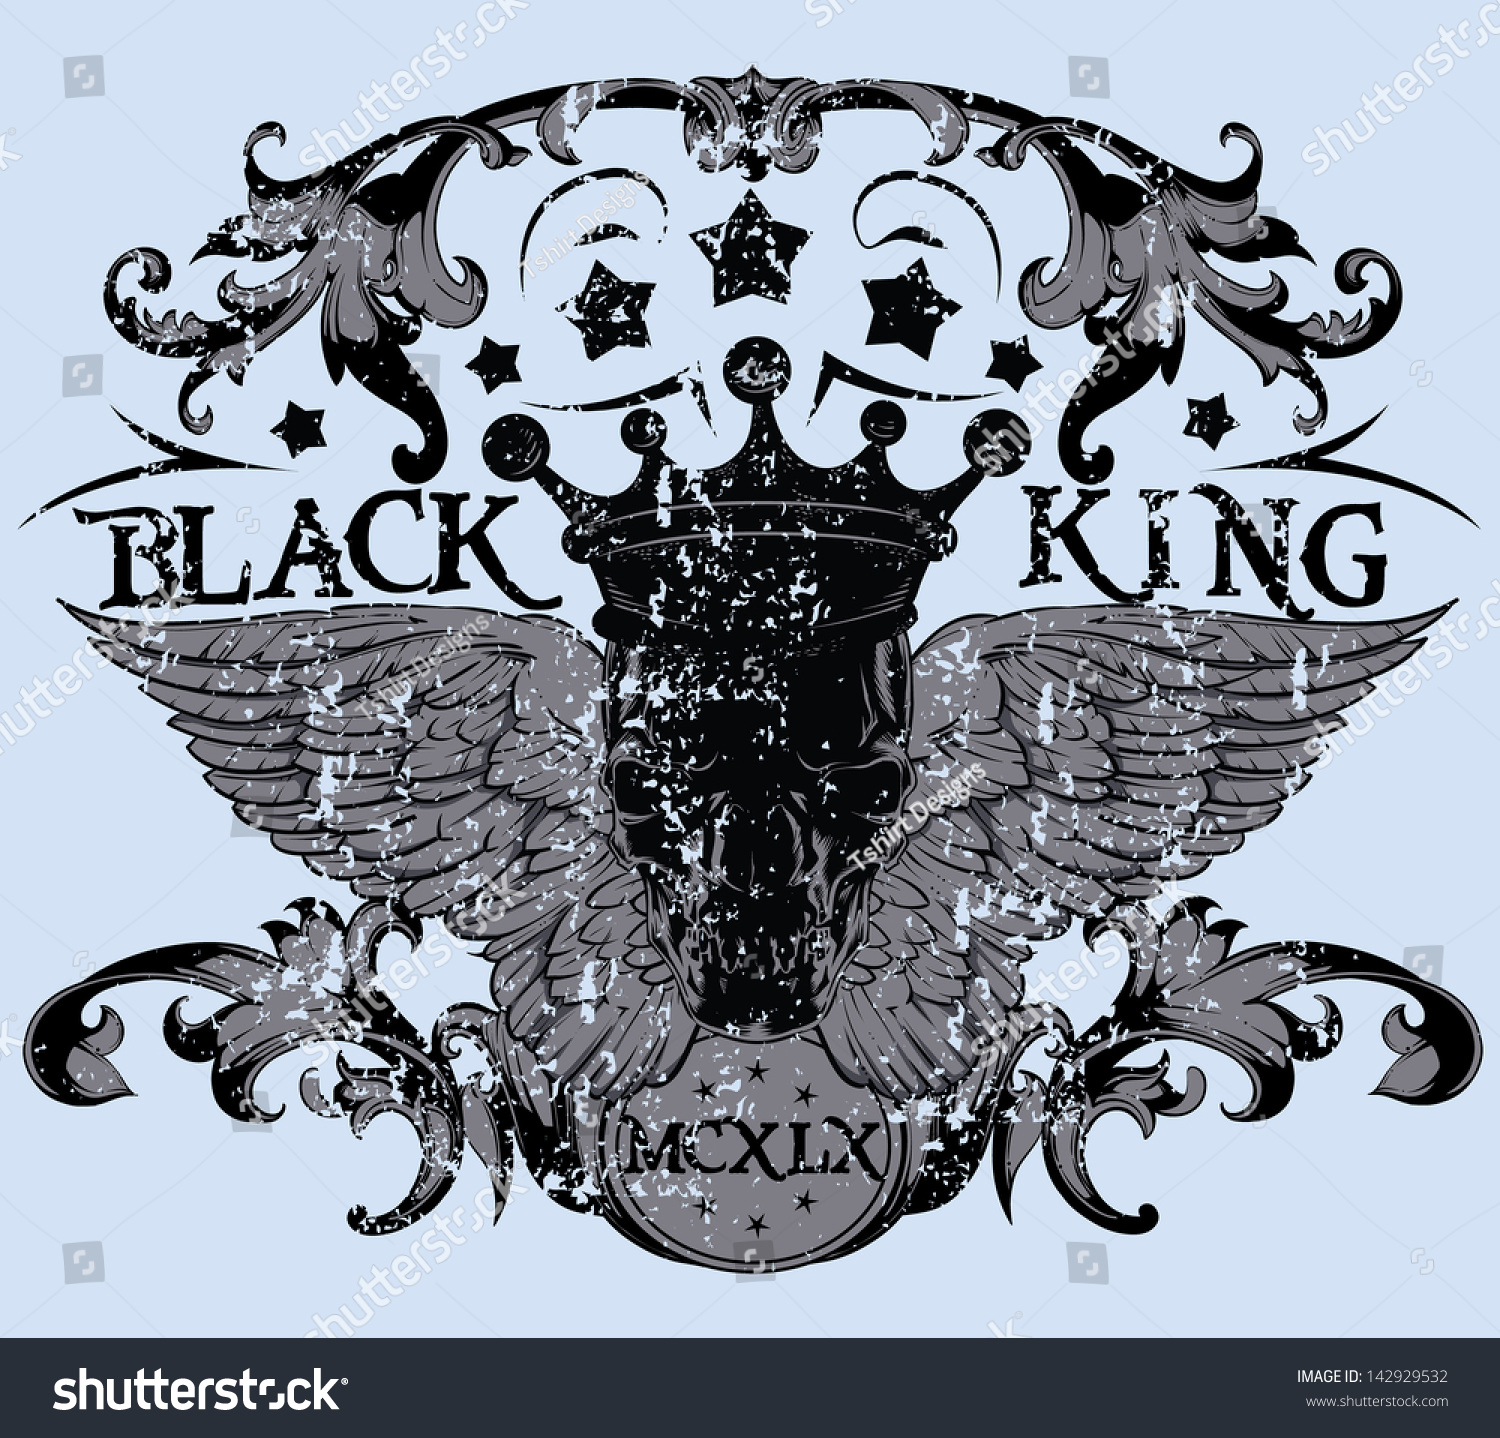 Black king also available in separate layer the original vector without scratch